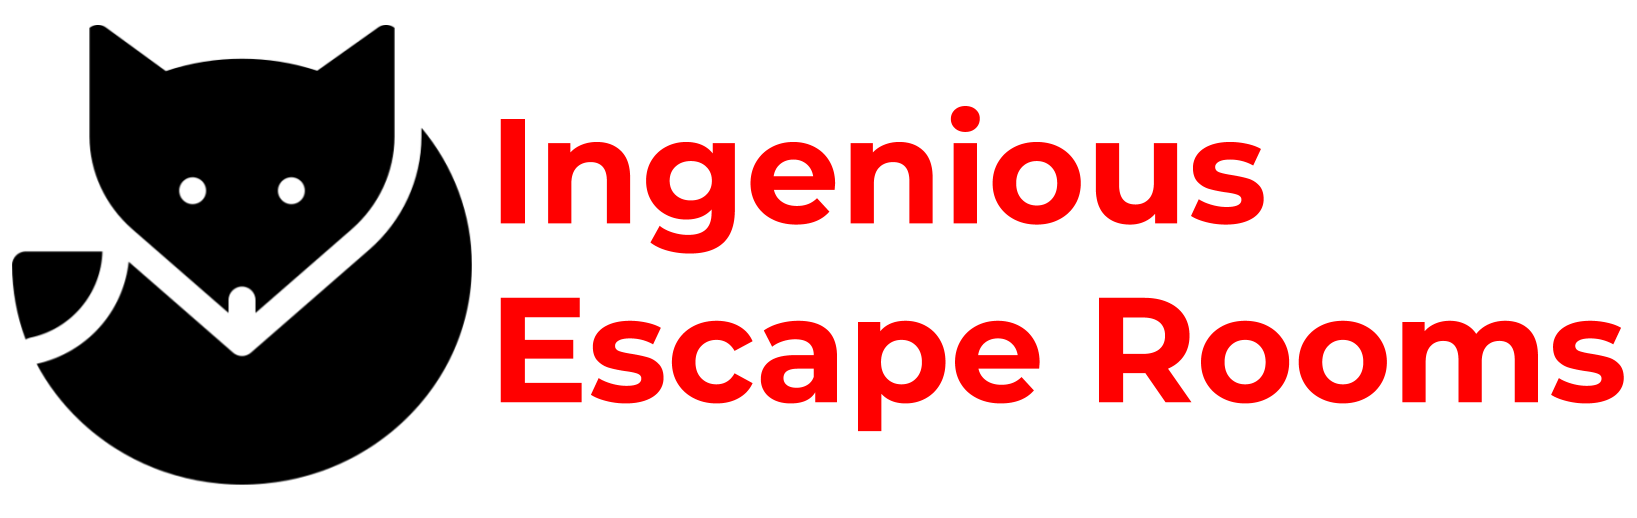 Ingenious Escape Rooms |   Untitled drawing